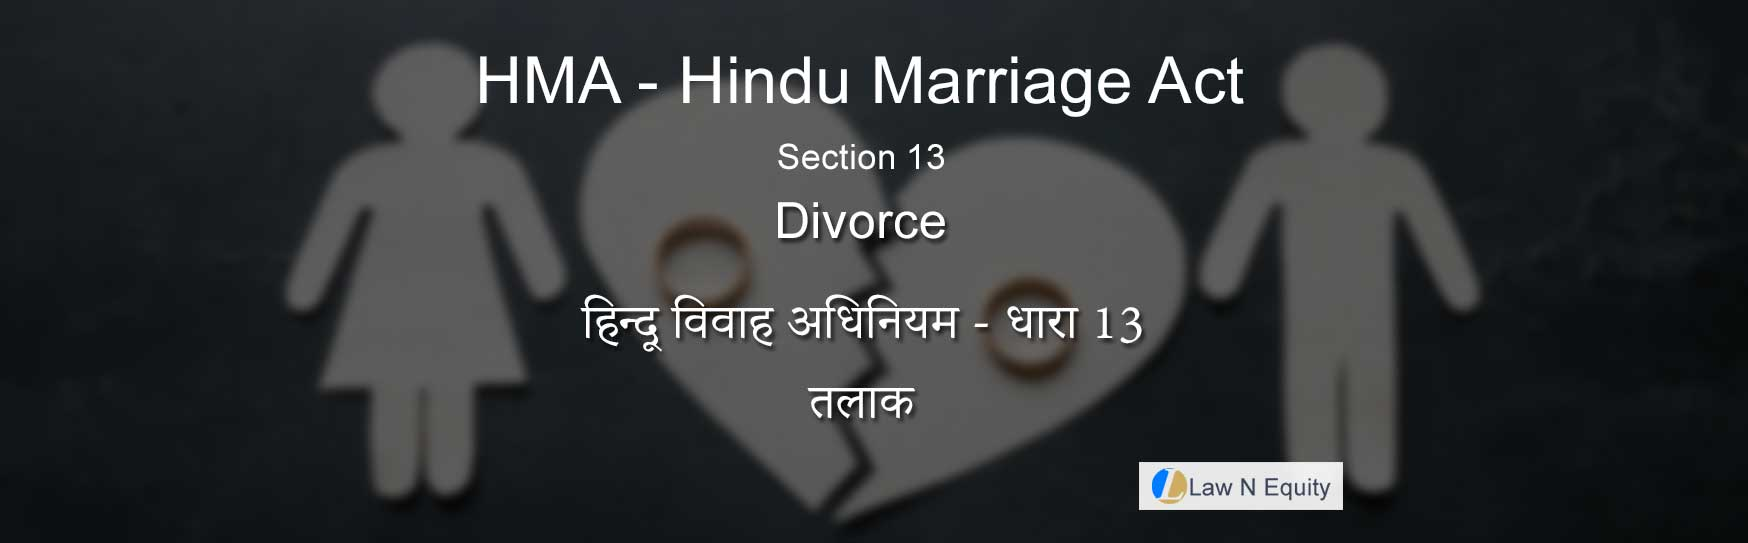 Hindu Marriage Act(HMA) Section 13